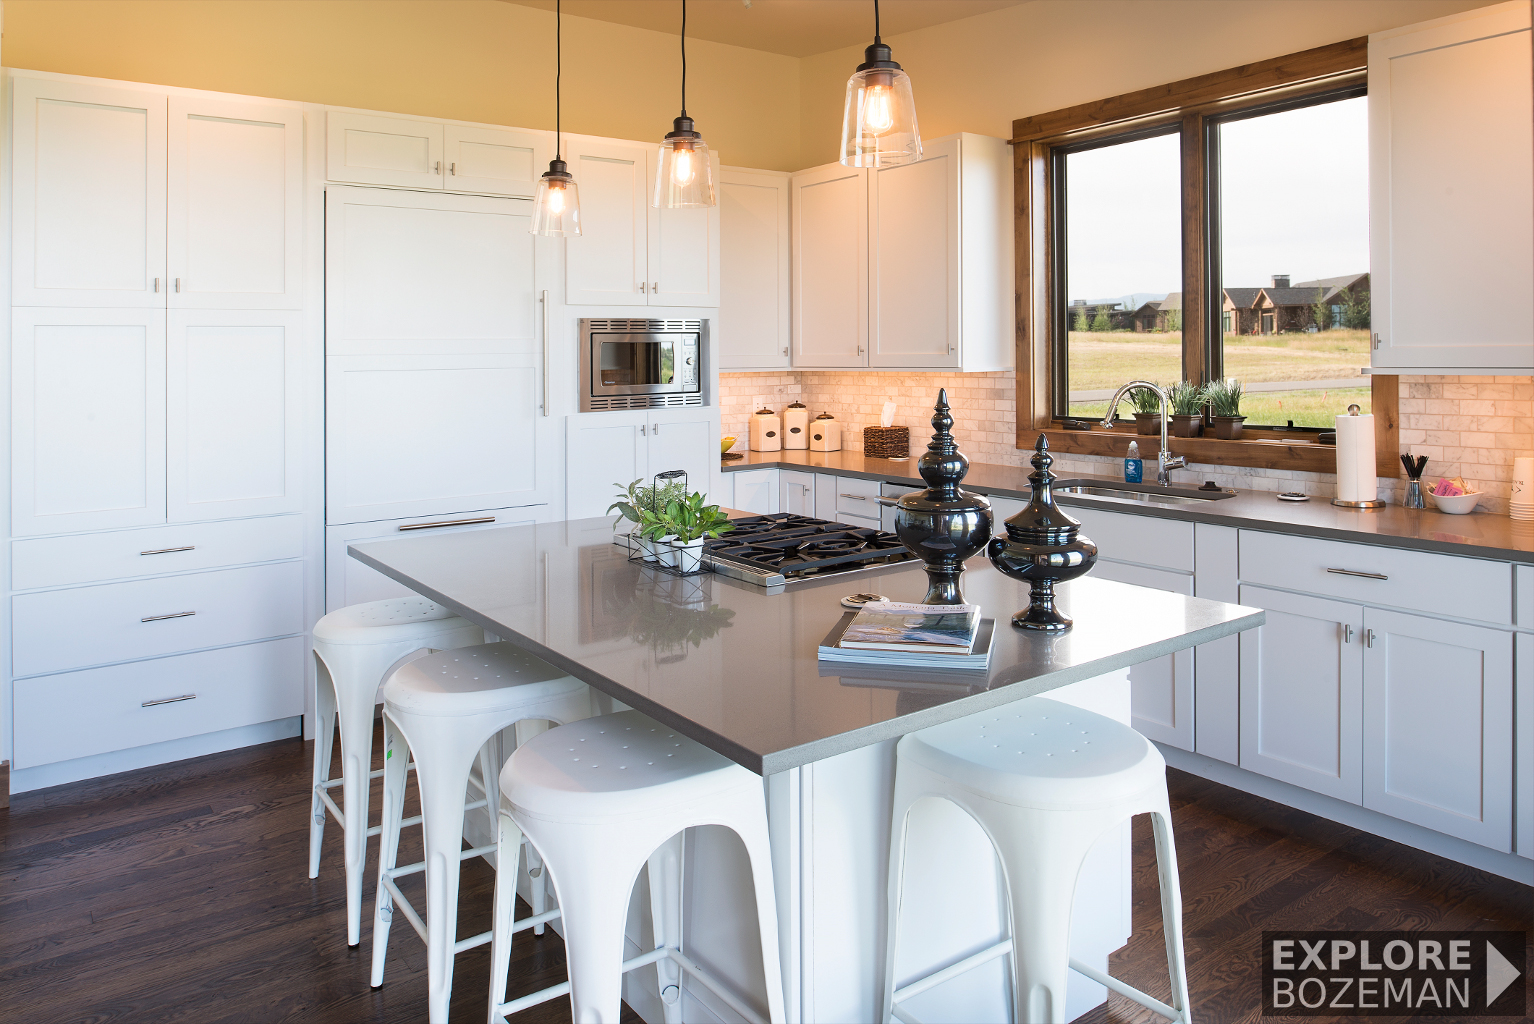 Montana Kitchens - Explore Bozeman